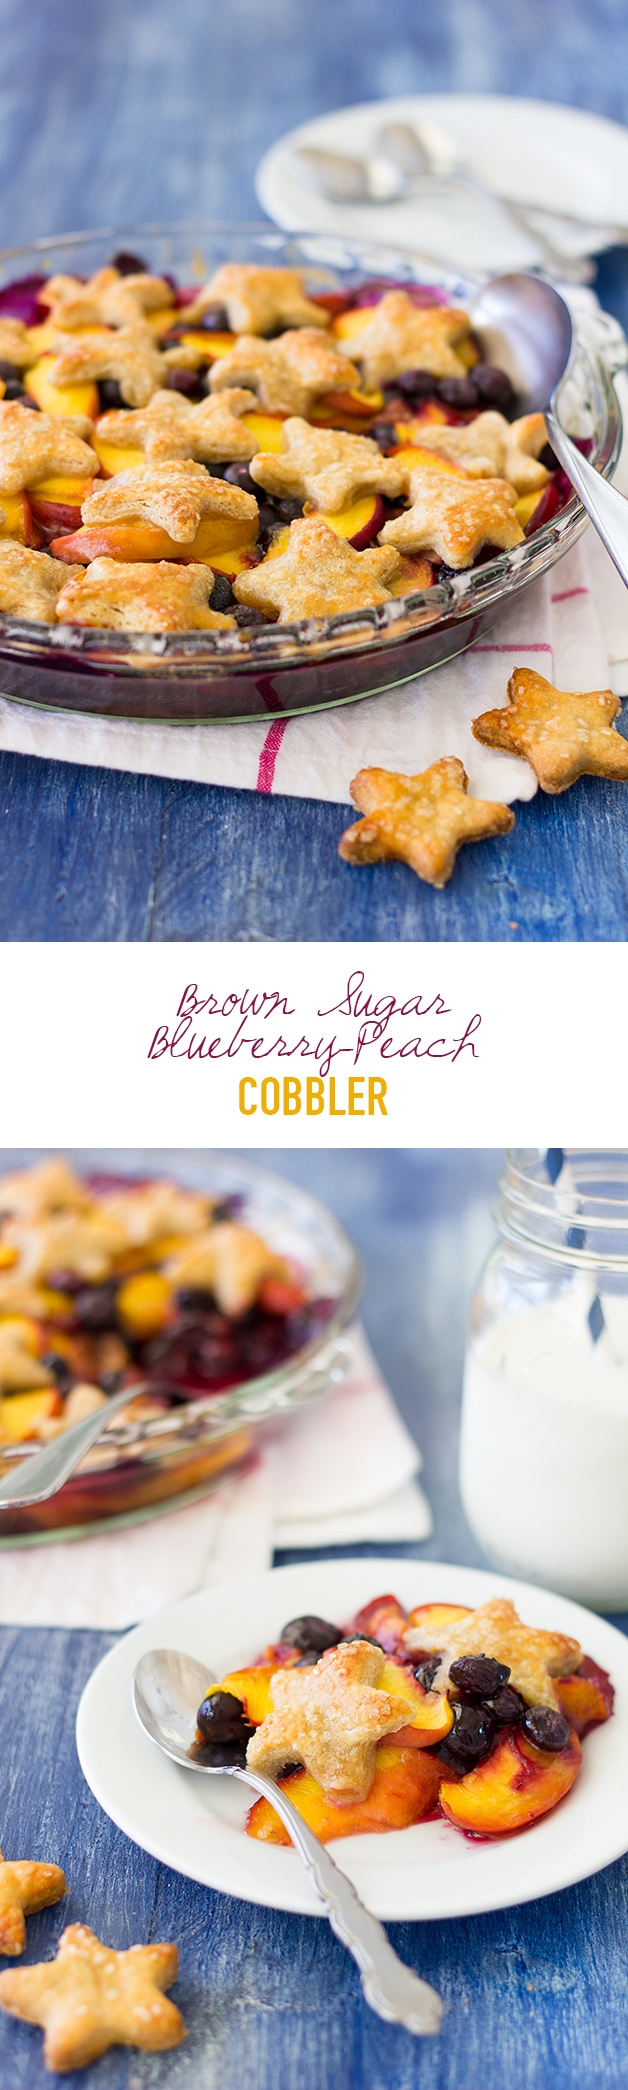 Brown Sugar Blueberry-Peach Cobbler - A juicy mixture of seasonal fruit sweetened with brown sugar and topped with flaky, buttery, pie crust stars for a patriotic twist.   www.brighteyedbalker.com